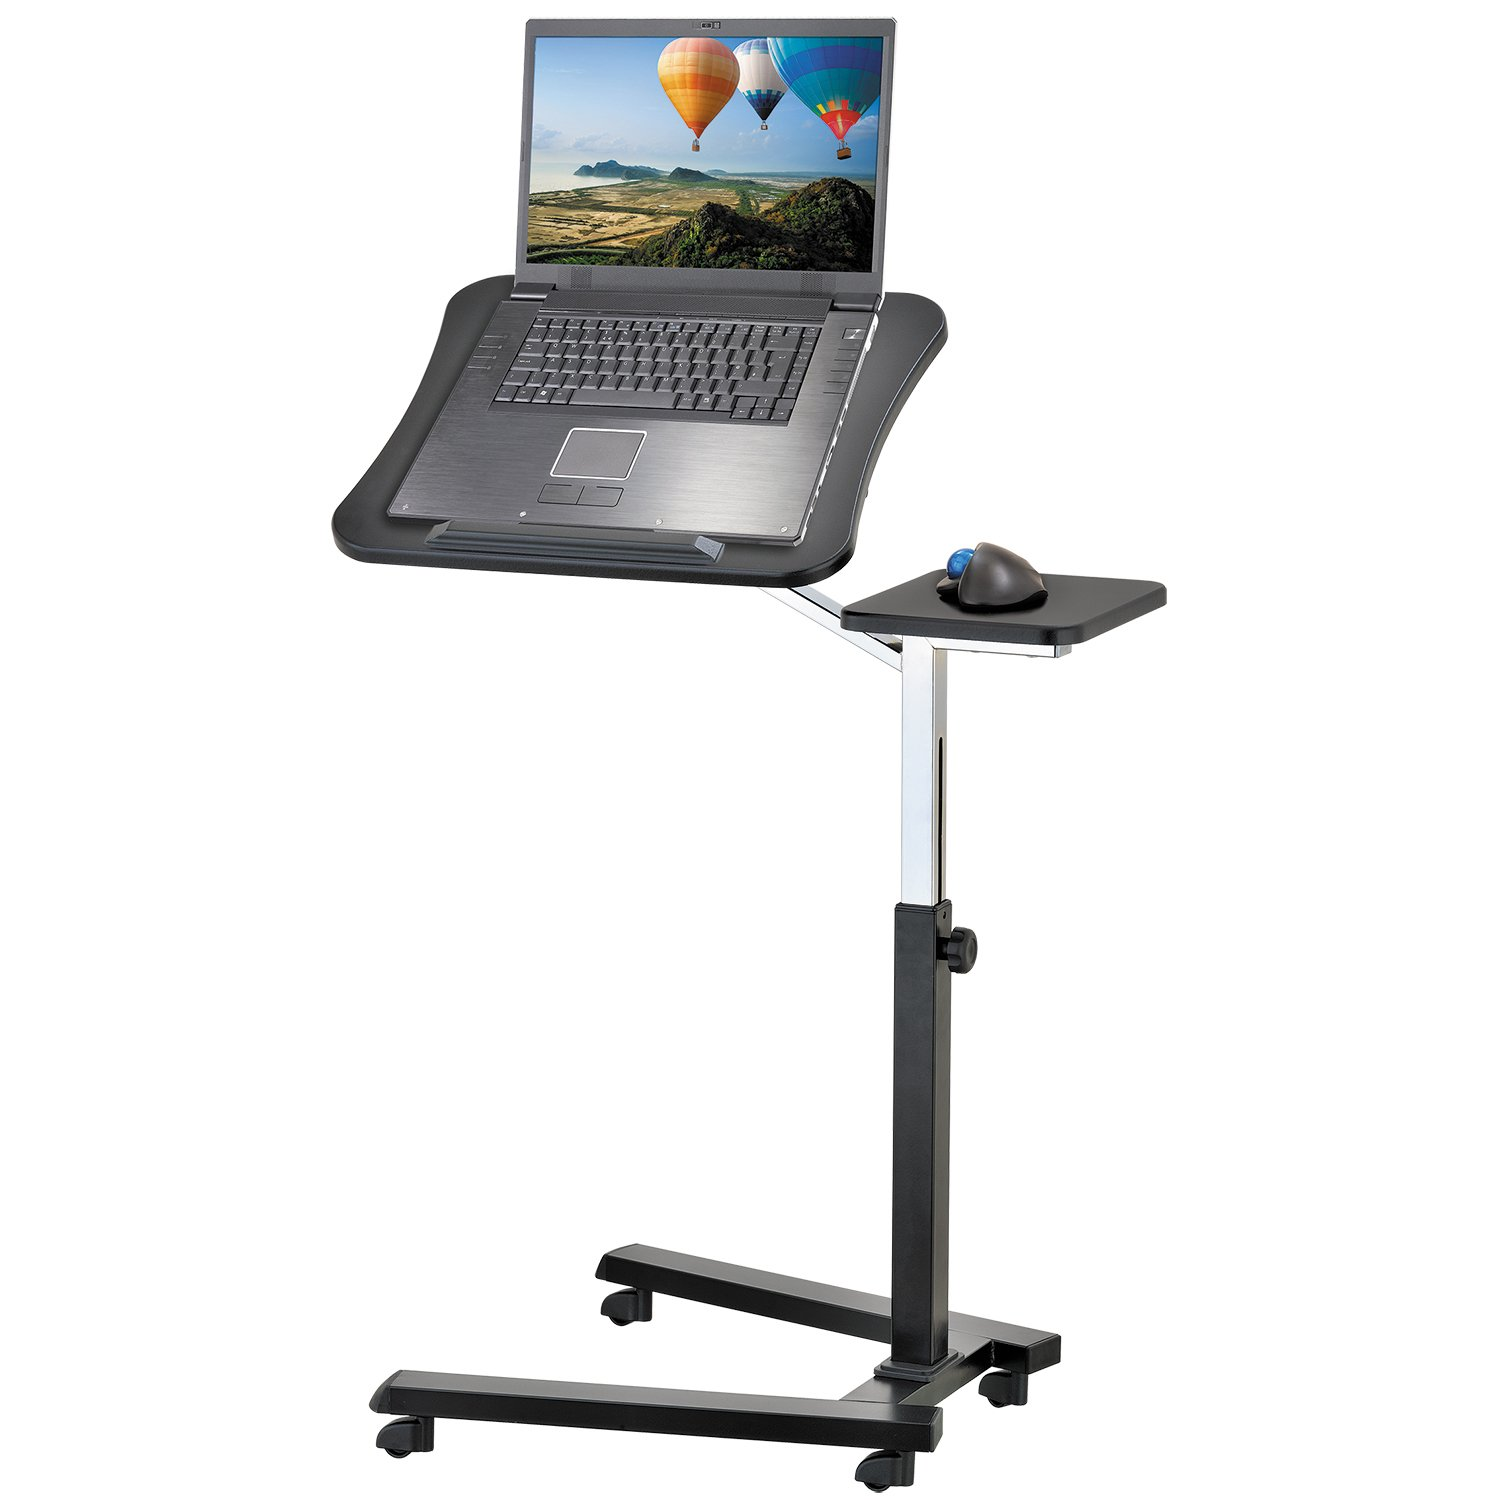 Tatkraft Joy Adjustable and Portable Laptop Stand, Easy to Fold, Rolling Desk with Mouse Pad, Ergonomic Laptop Desk on Wheels